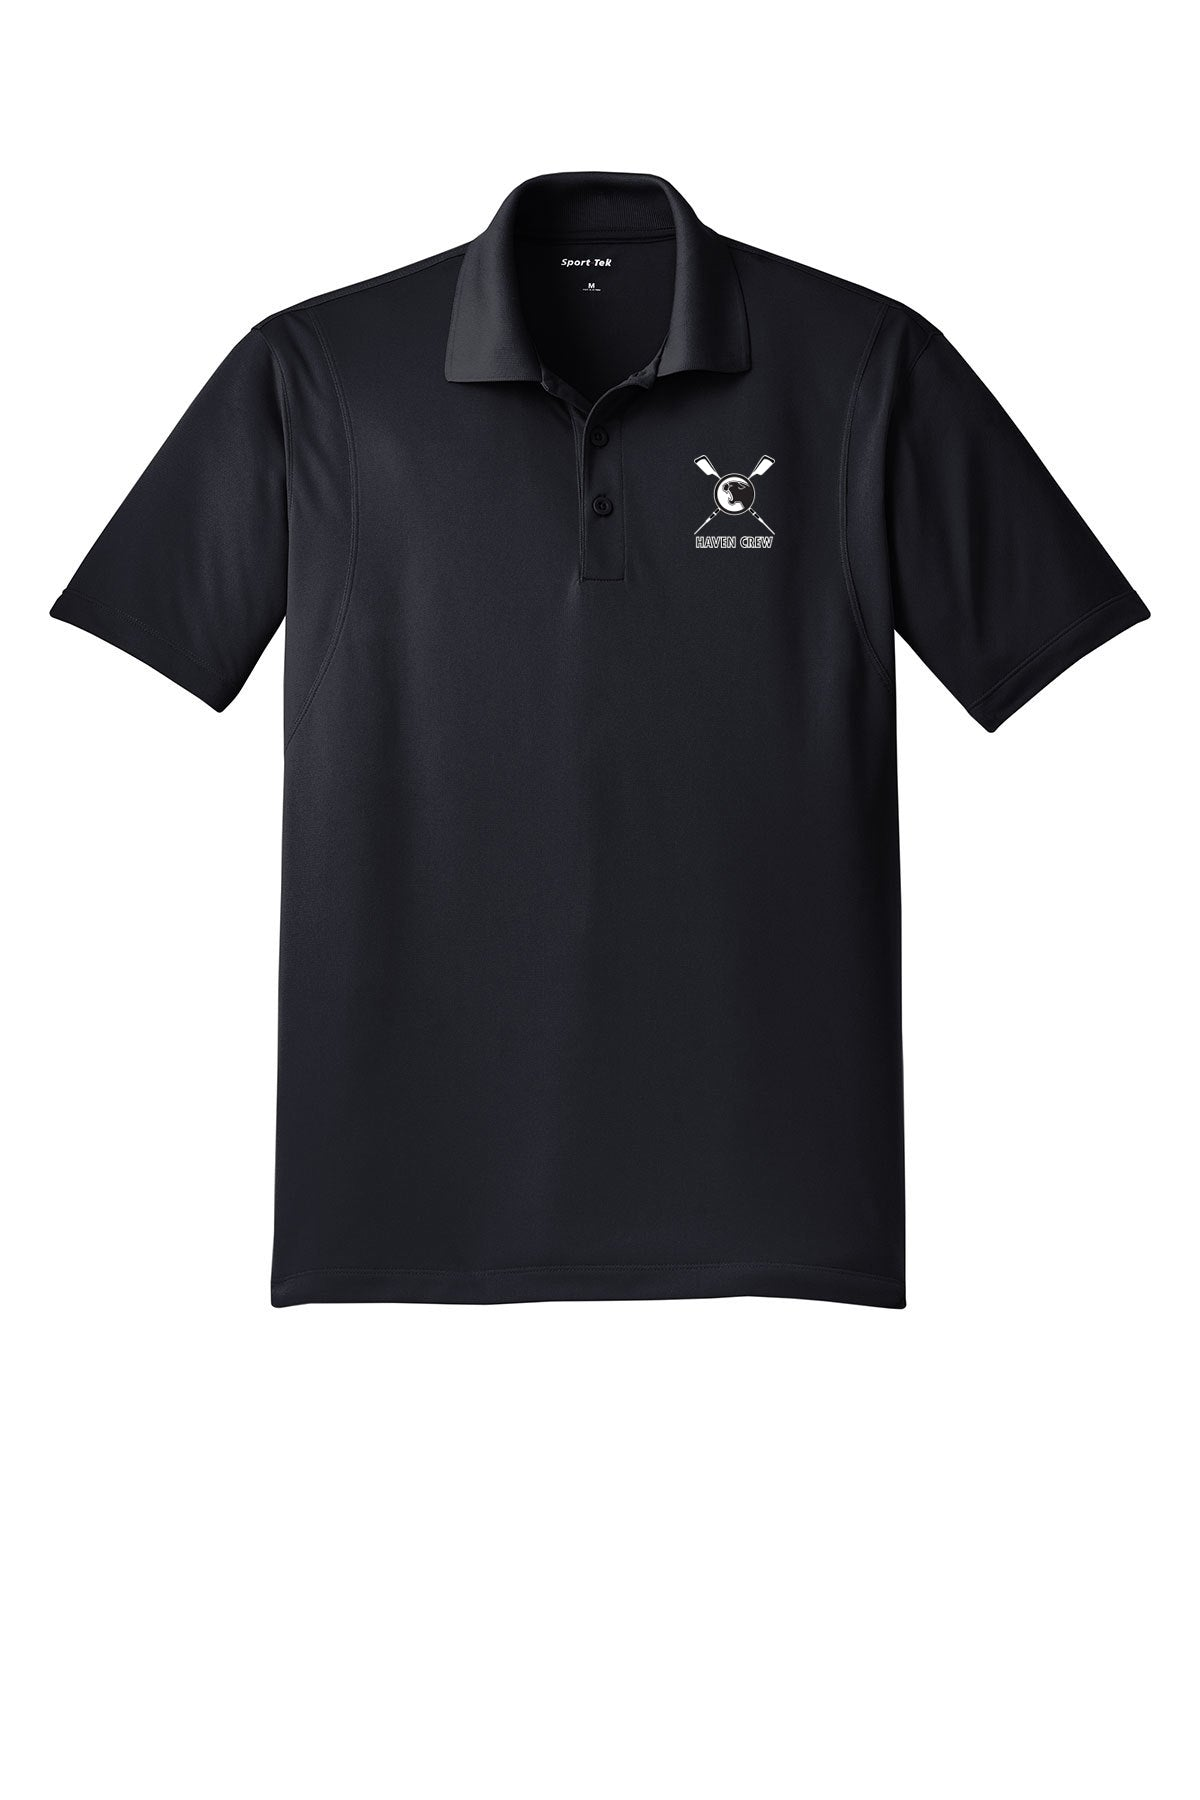 Haven Crew Embroidered Performance Men's Polo